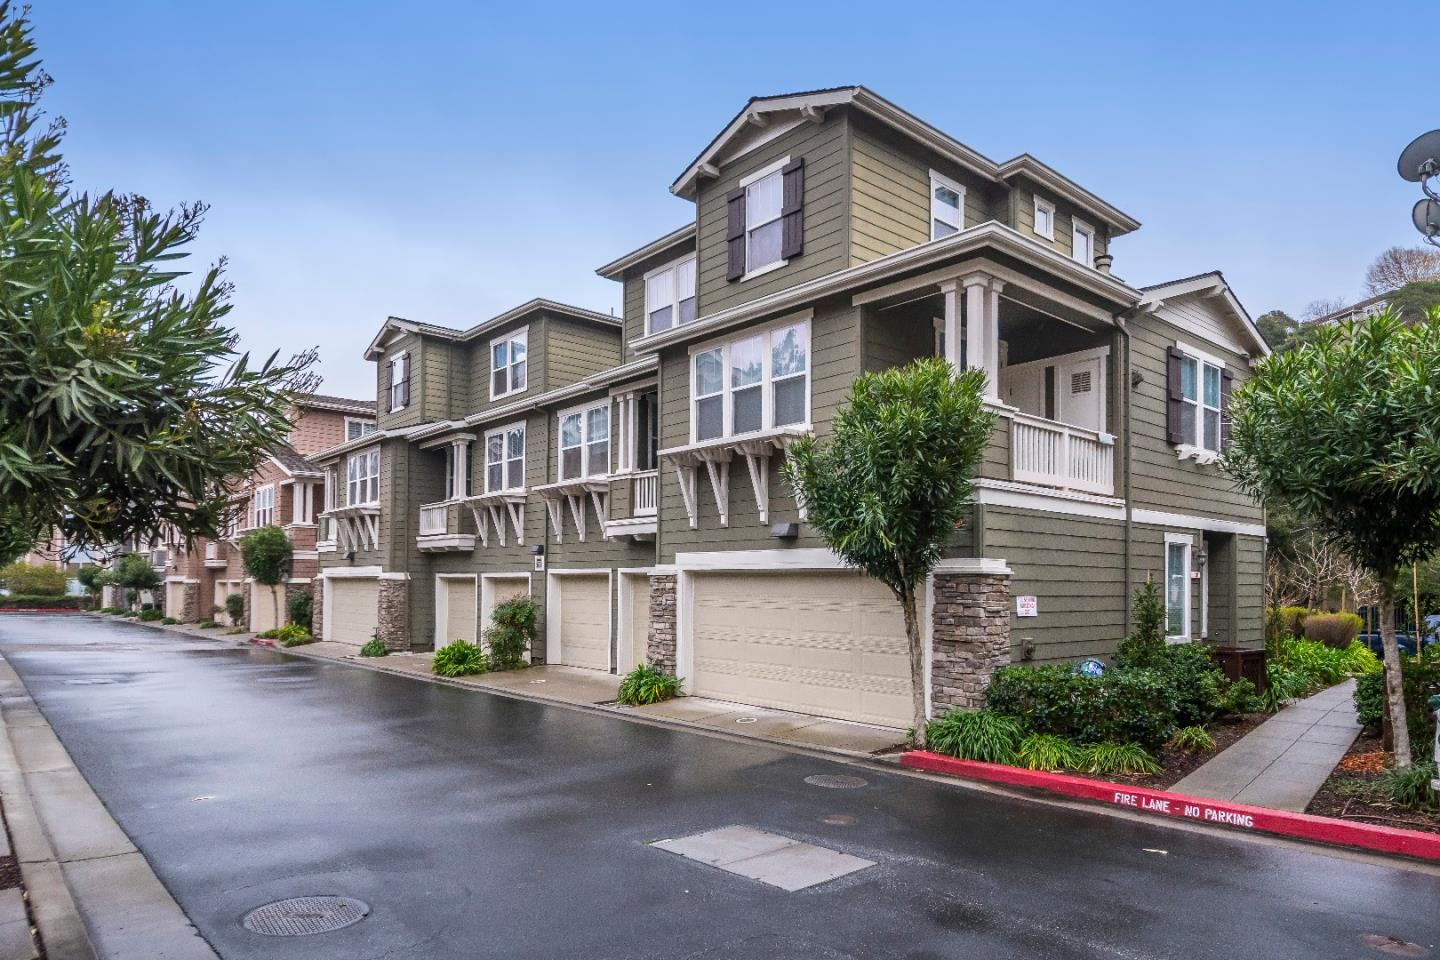 Townhouse for Rent at 300 Live Oak Way 300 Live Oak Way Belmont, California 94002 United States